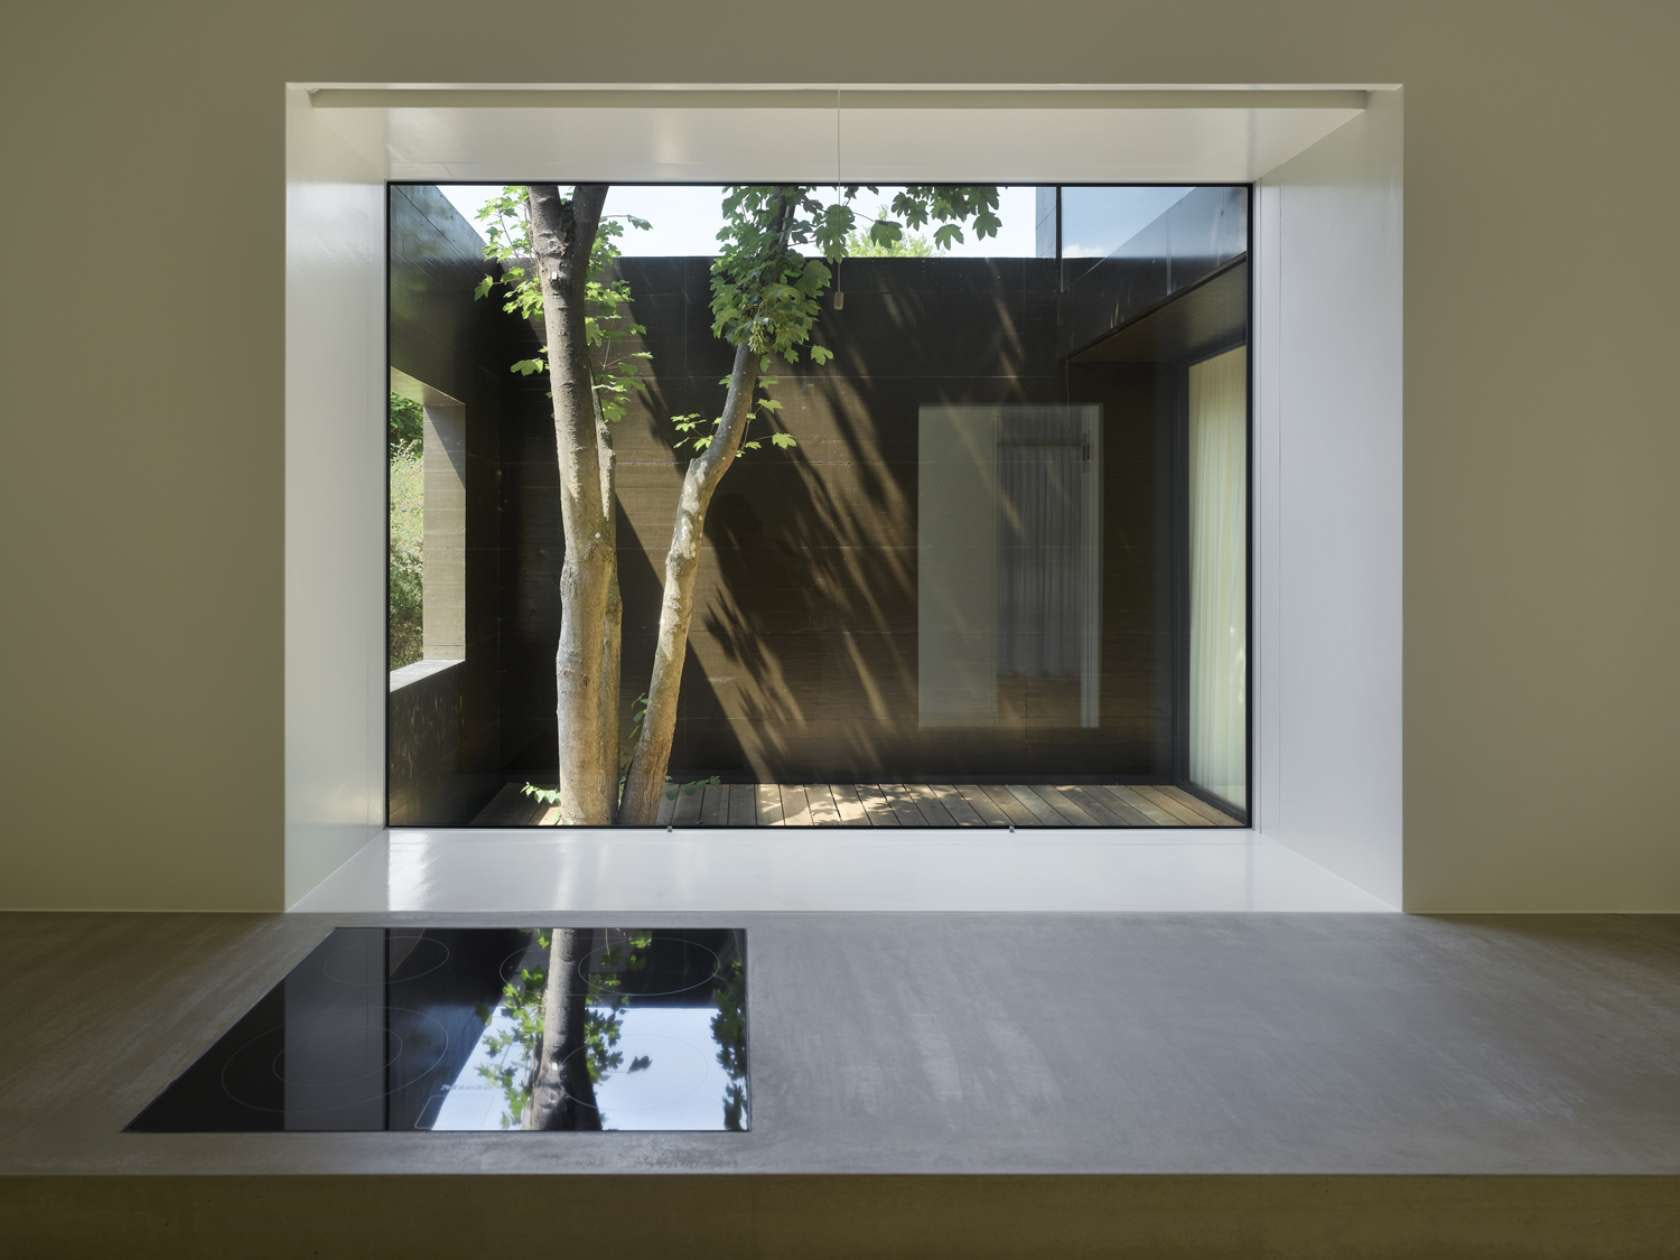 Nothingness: 10 Perfect Minimalist Interiors - Architizer Journal